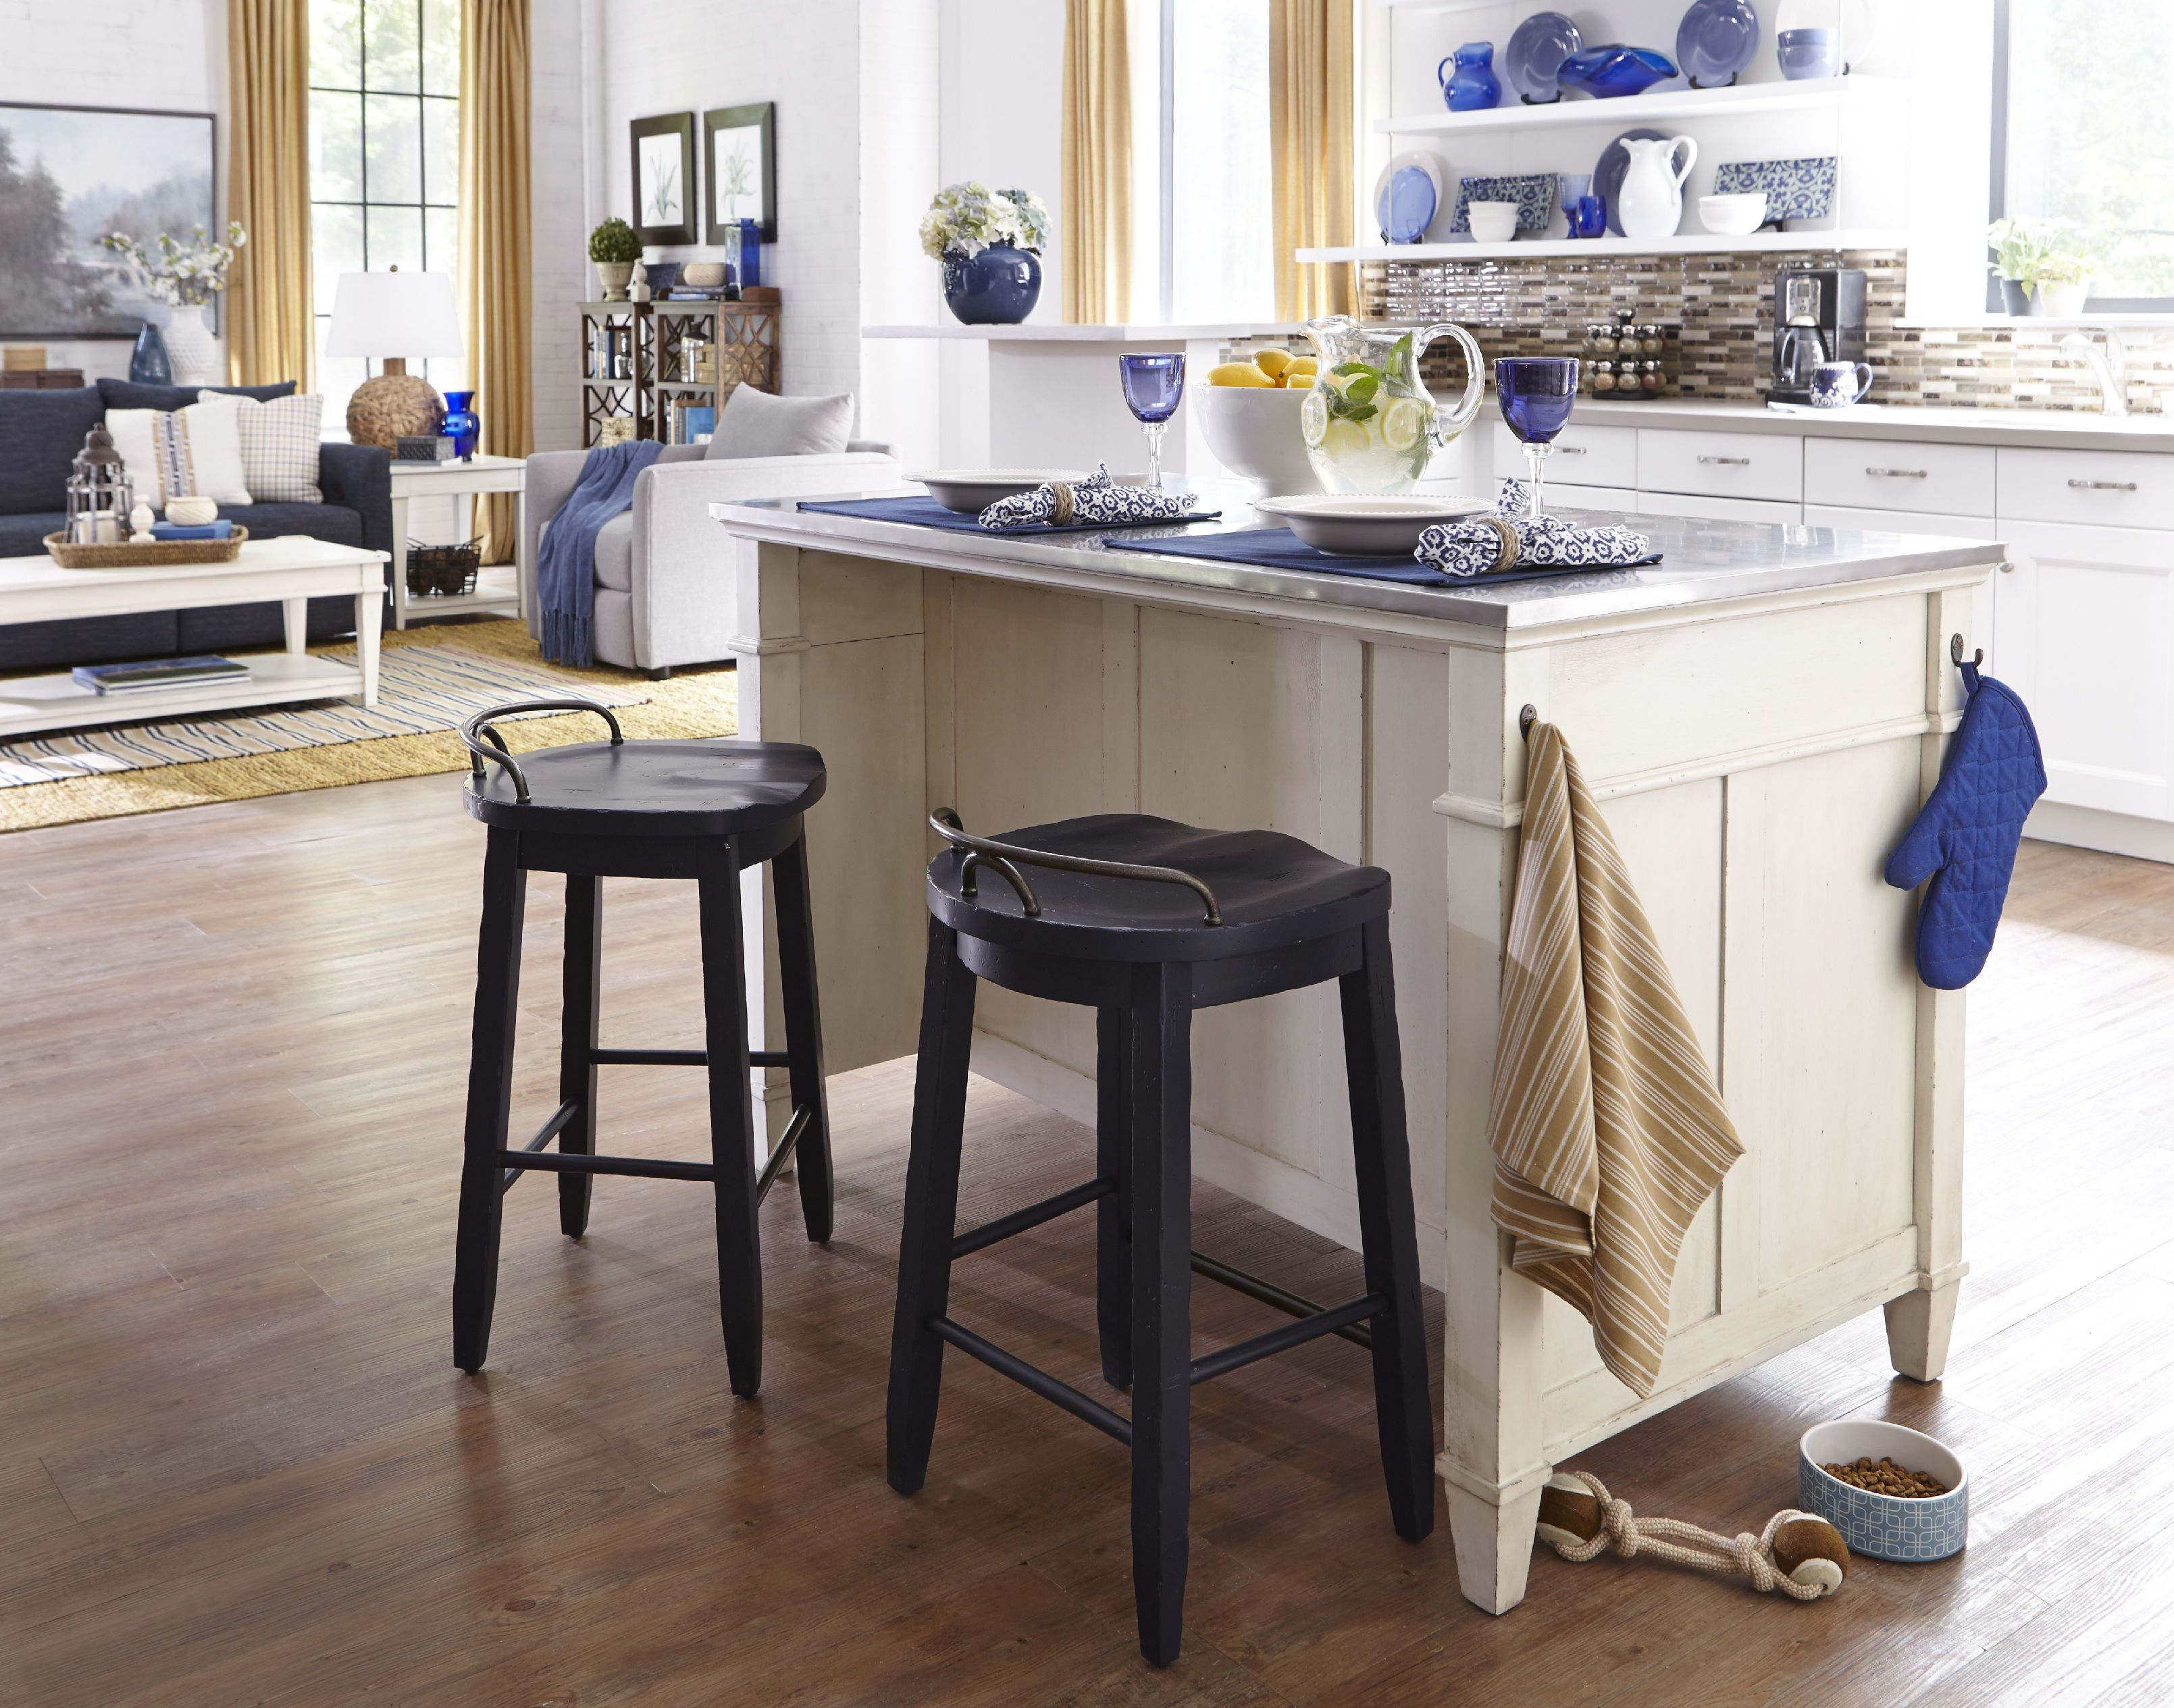 Kitchen Island Bar Stools Pictures Ideas Tips From: Trisha Yearwood Kitchen Cowboy Bar Stool